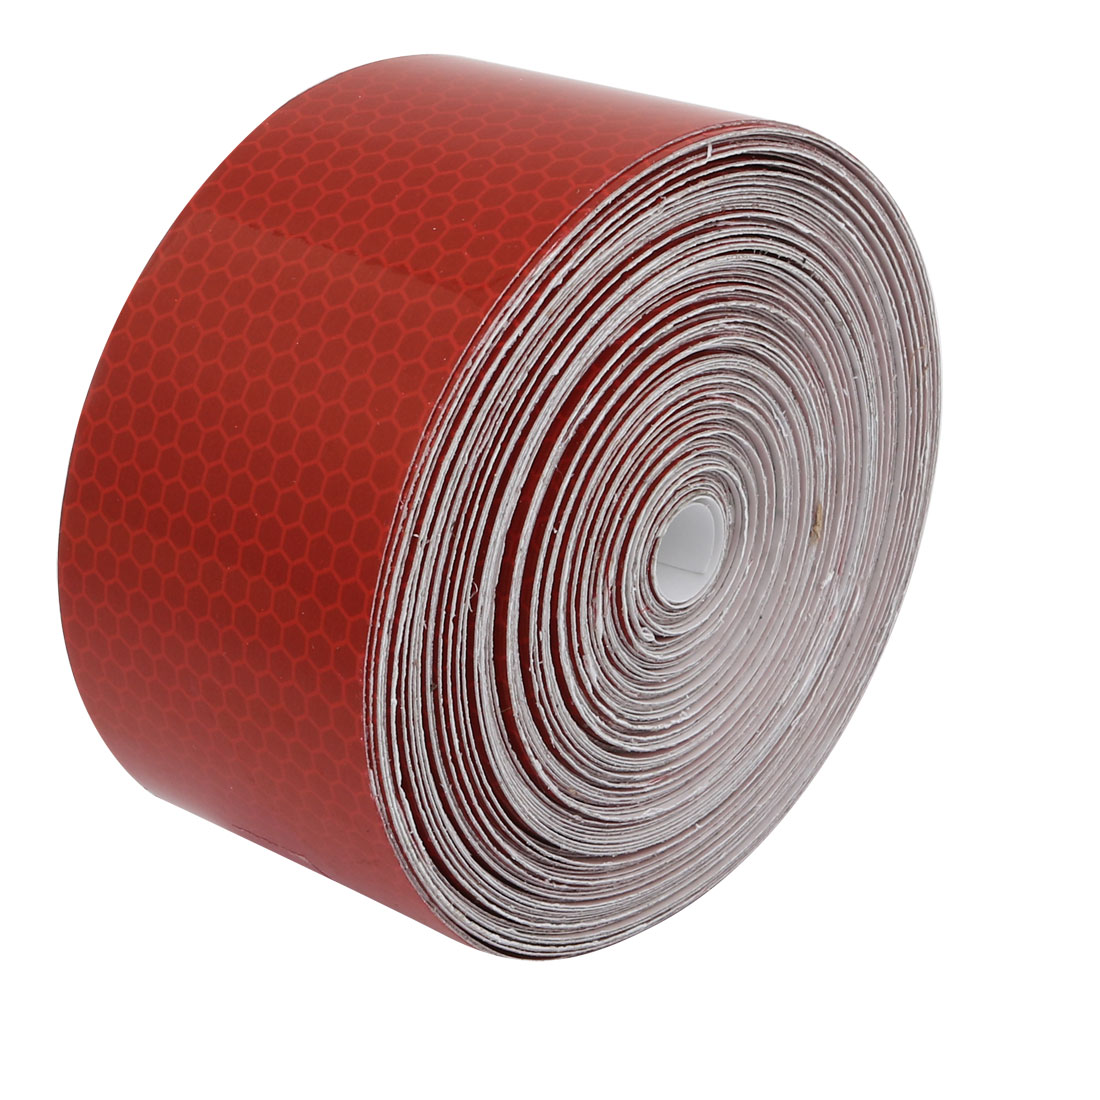 5cm Wide 15M Long Honeycomb Single Sided Adhesive Reflective Warning Tape Red